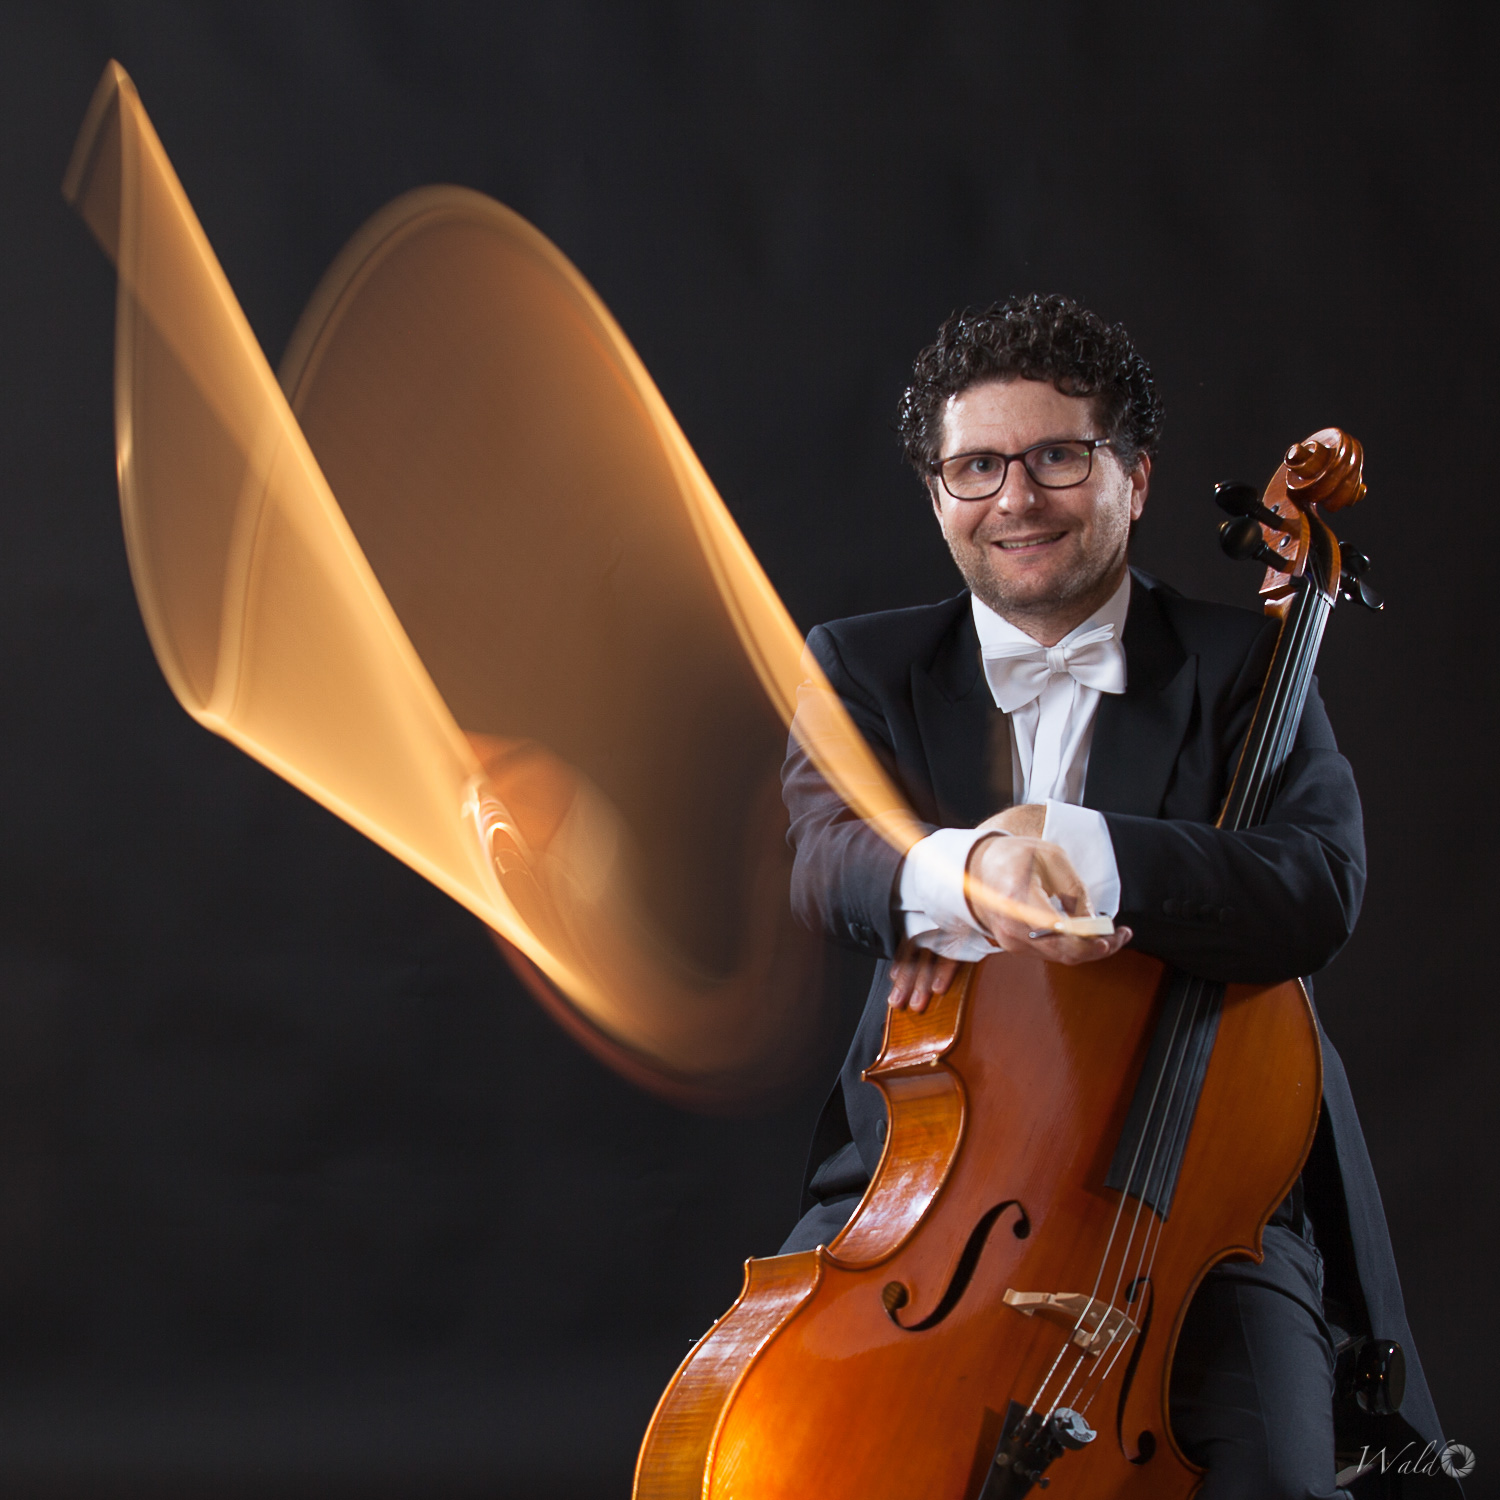 Luis Gomes Andrade, Cello